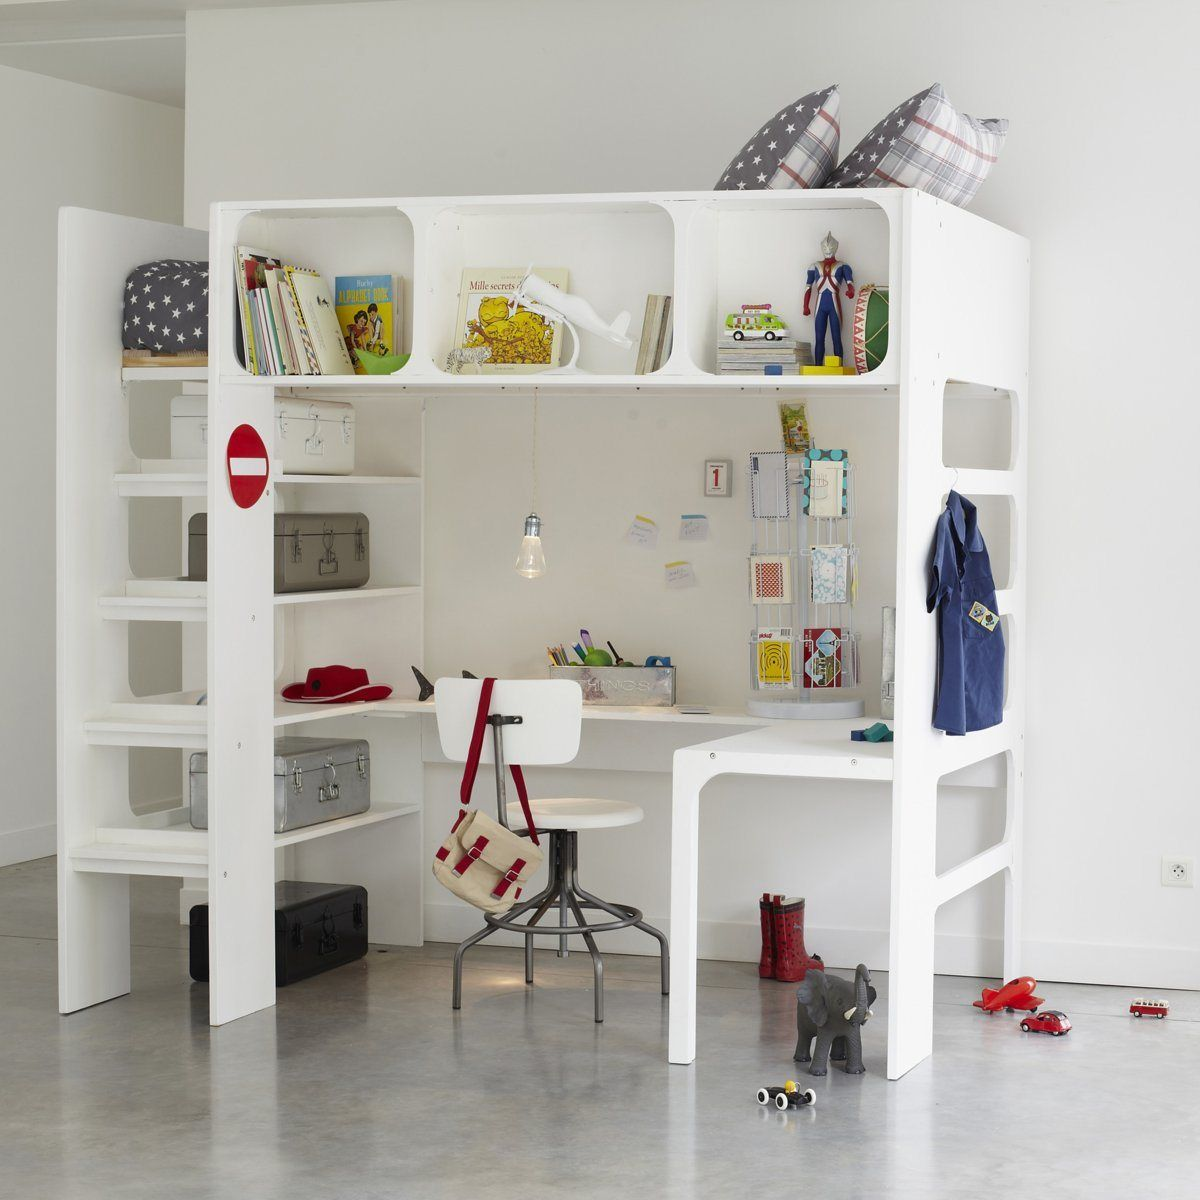 La redoute lit bureau et commode gain de place bcn amenagement int - Enfant lit mezzanine ...